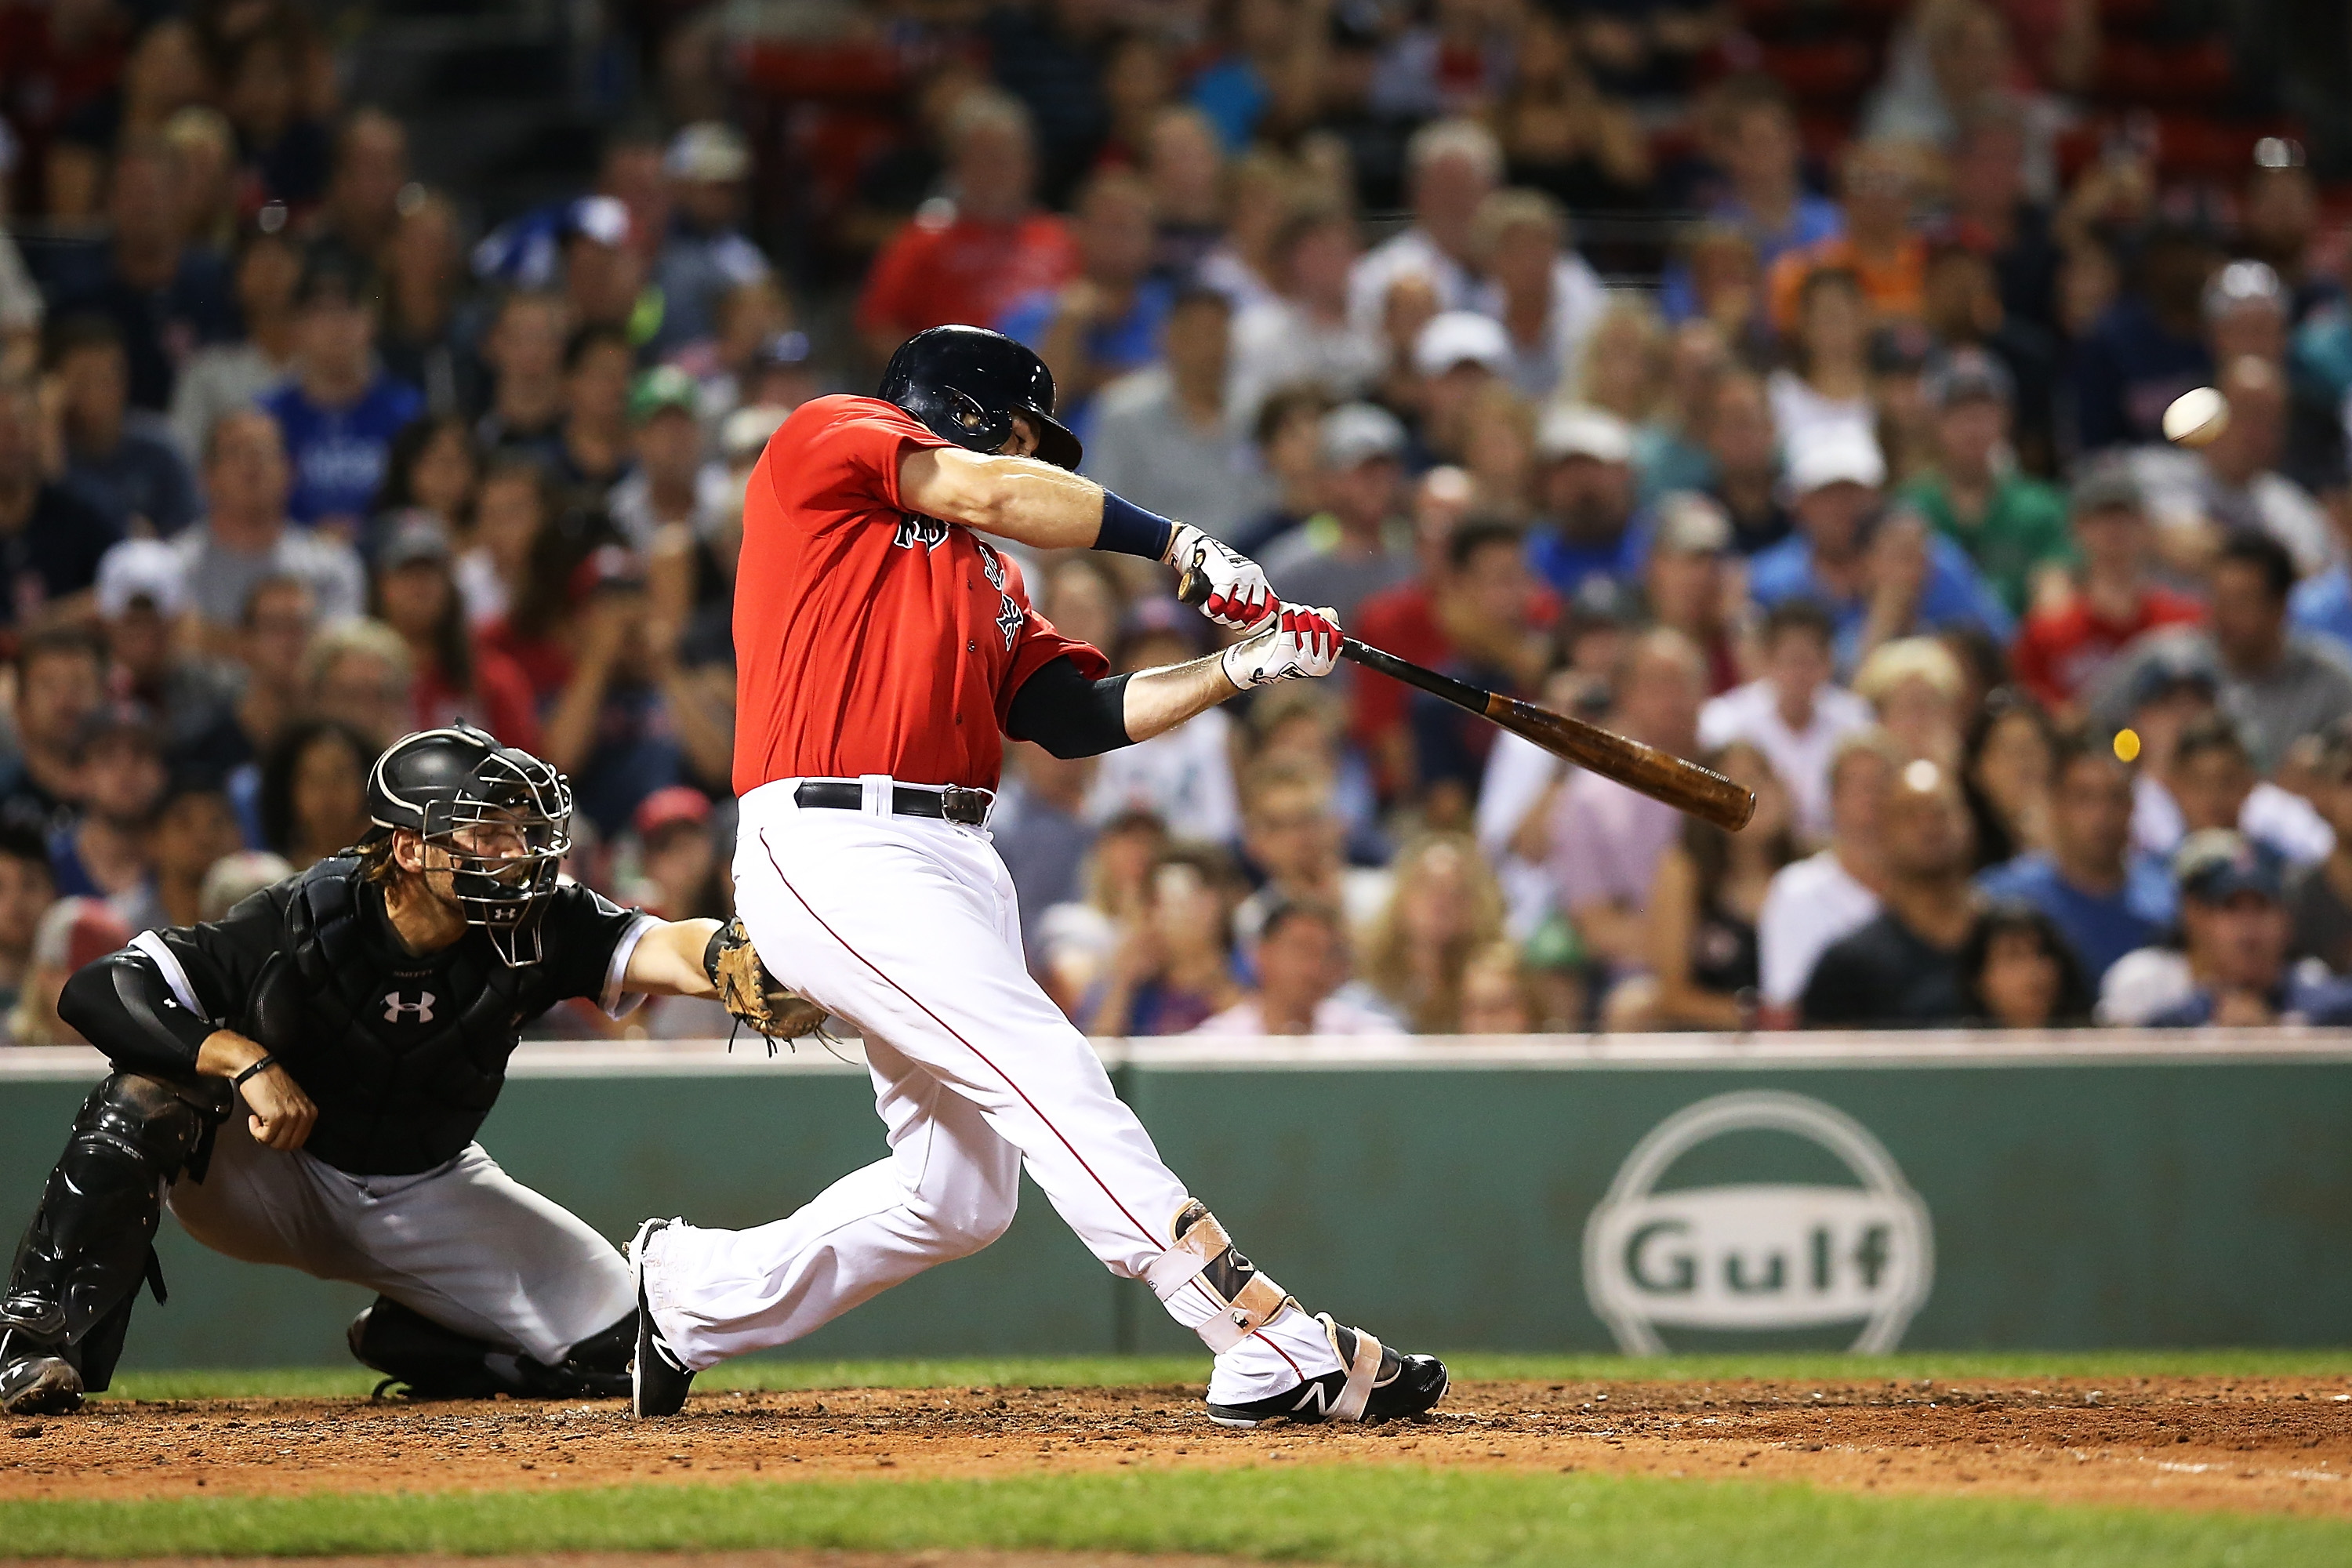 Guyer scores victor on Holt's error, Indians top Red Sox 5-4